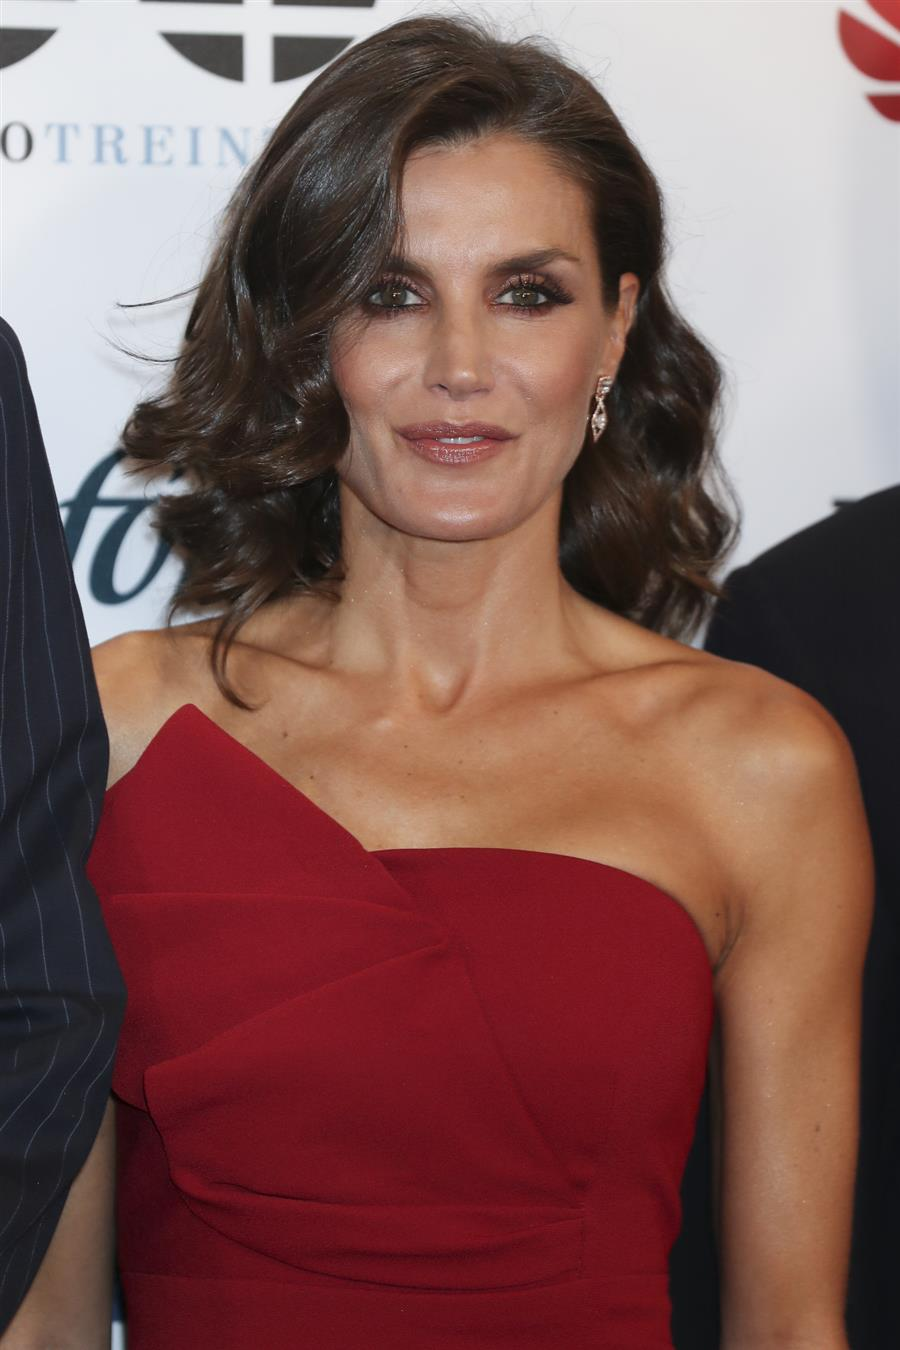 El look de beauty de Letizia